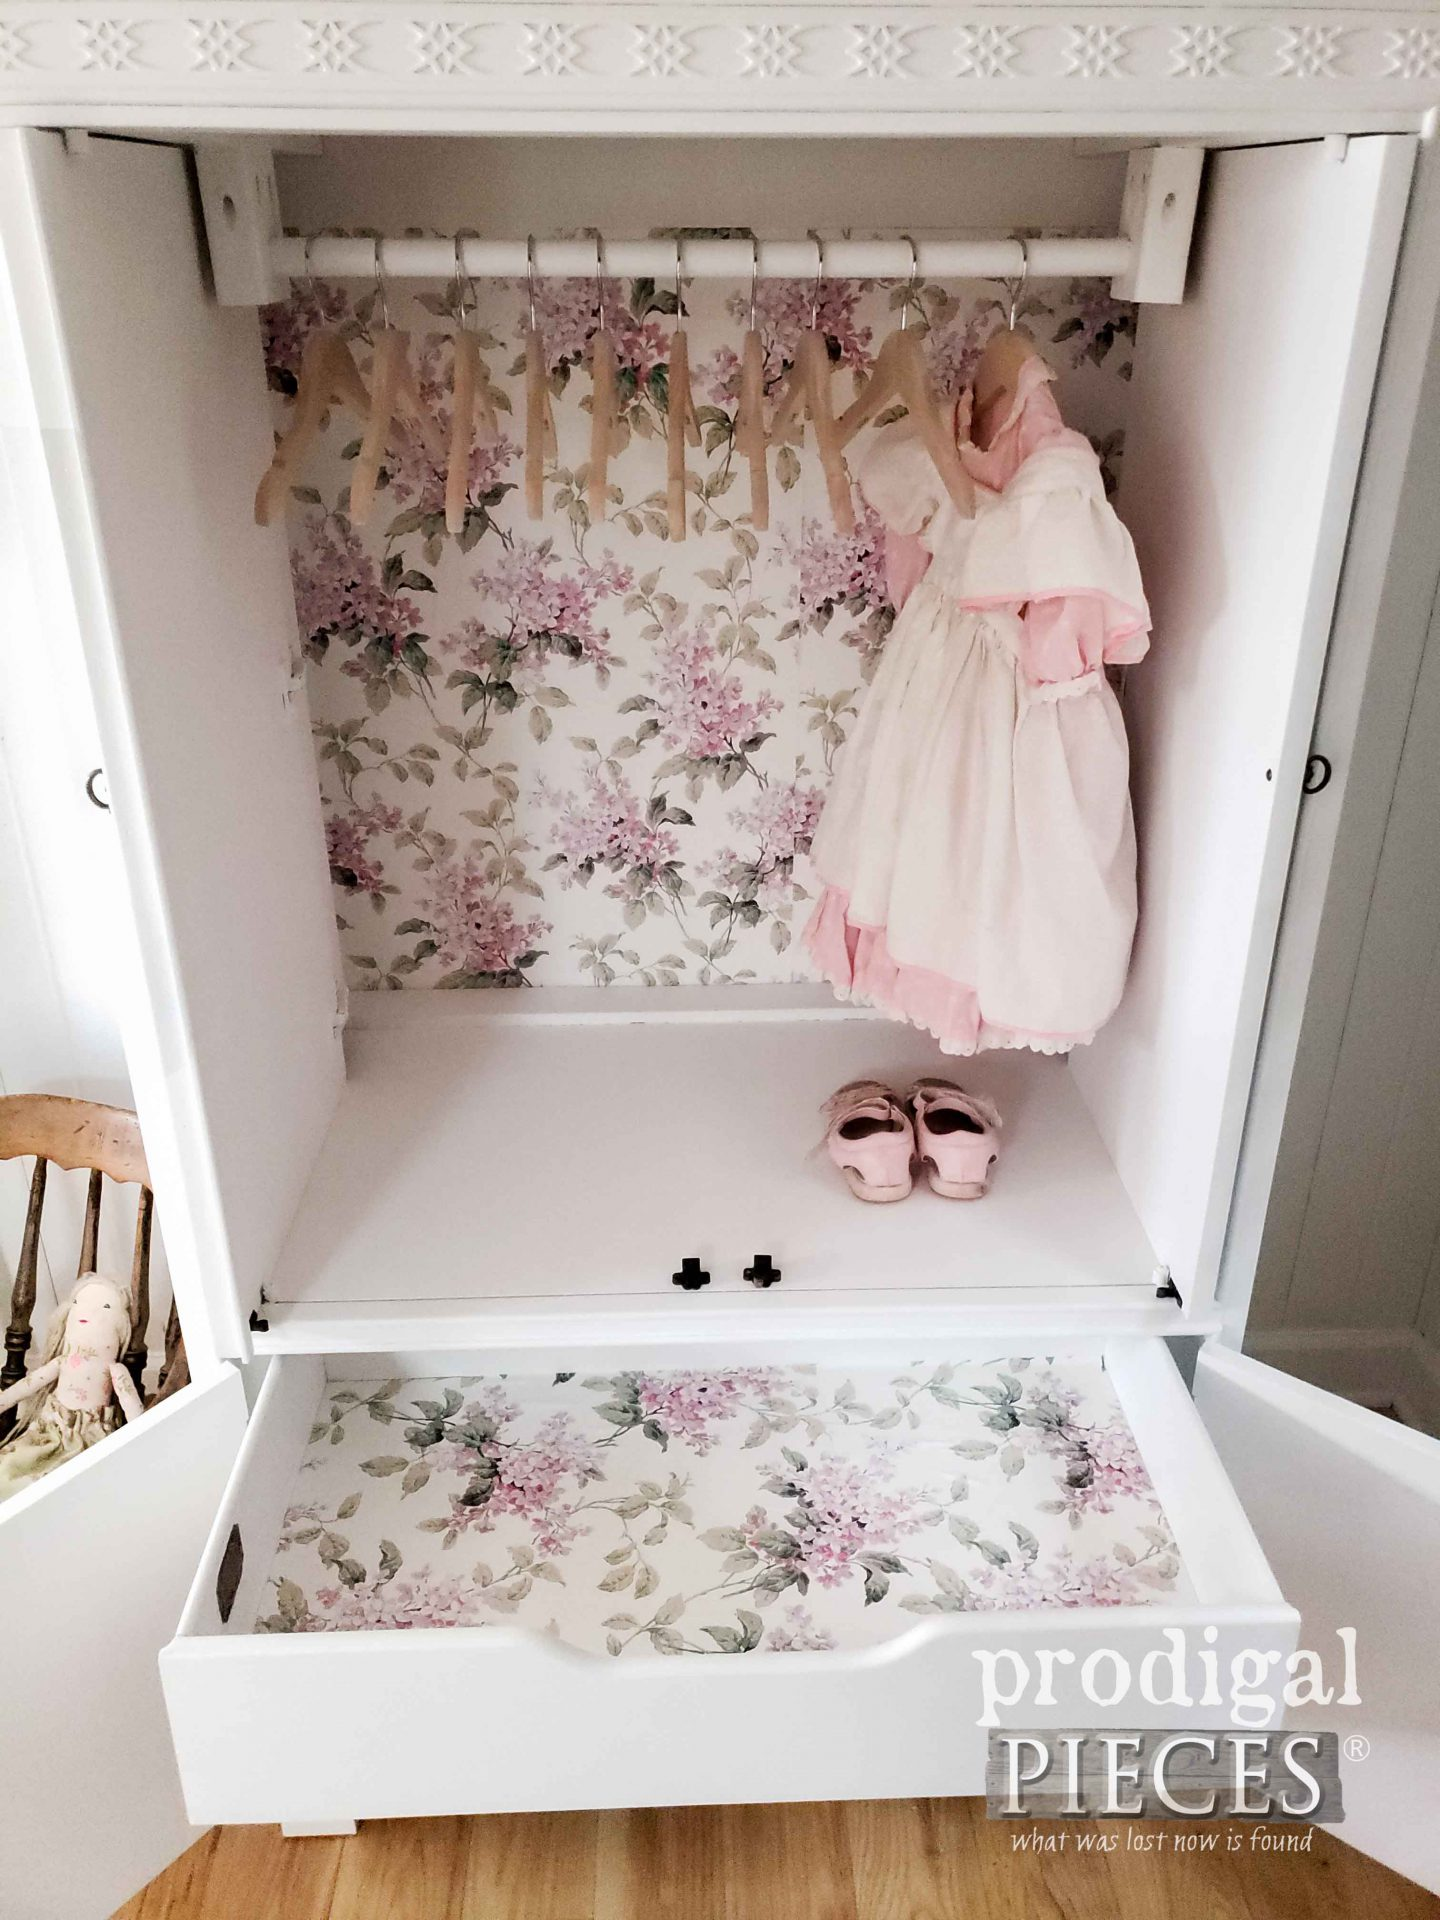 Upcycled Child's Wardrobe for Baby Nursery by Larissa of Prodigal Pieces | prodigalpieces.com #prodigalpieces #diy #furniture #home #homedecor #nursery #baby